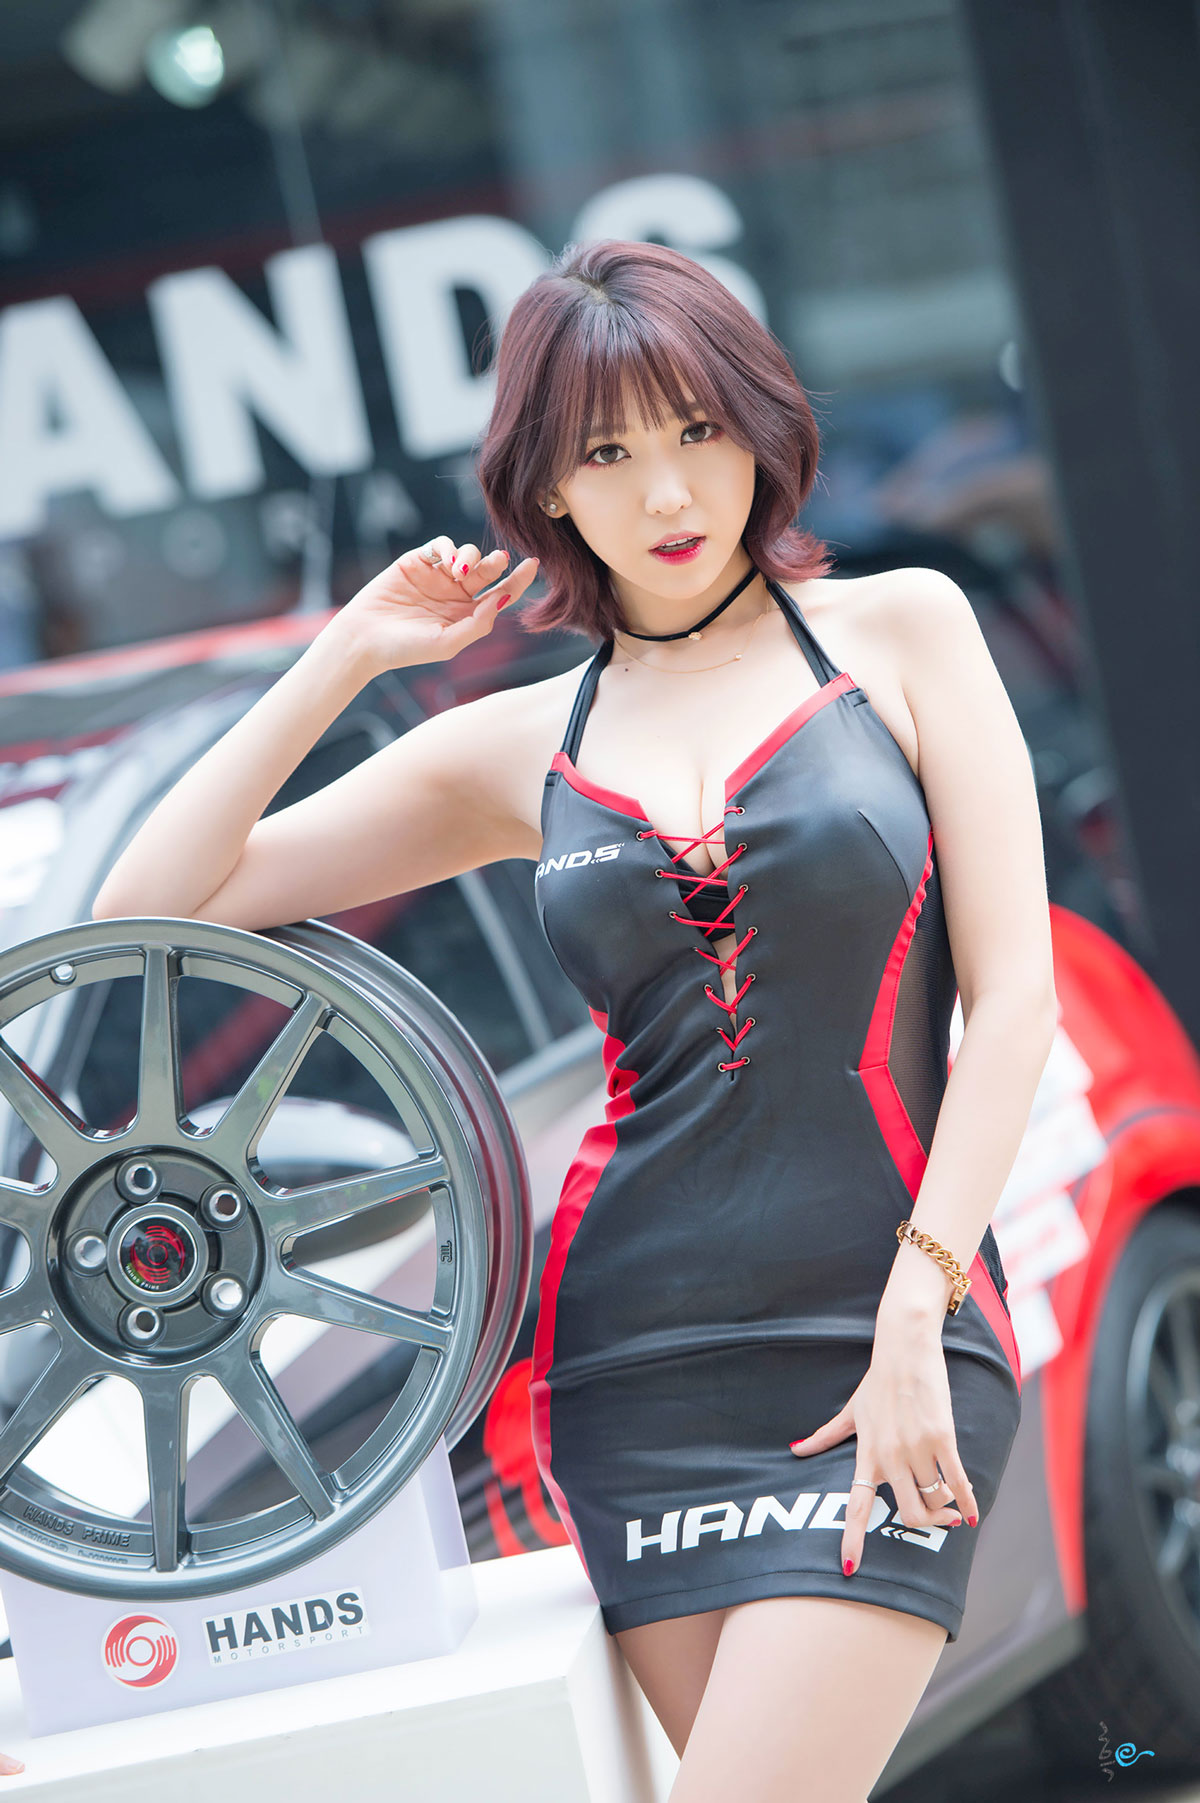 Lee Eun Hye Asian Festival of Speed 2015 Hands Motorsport